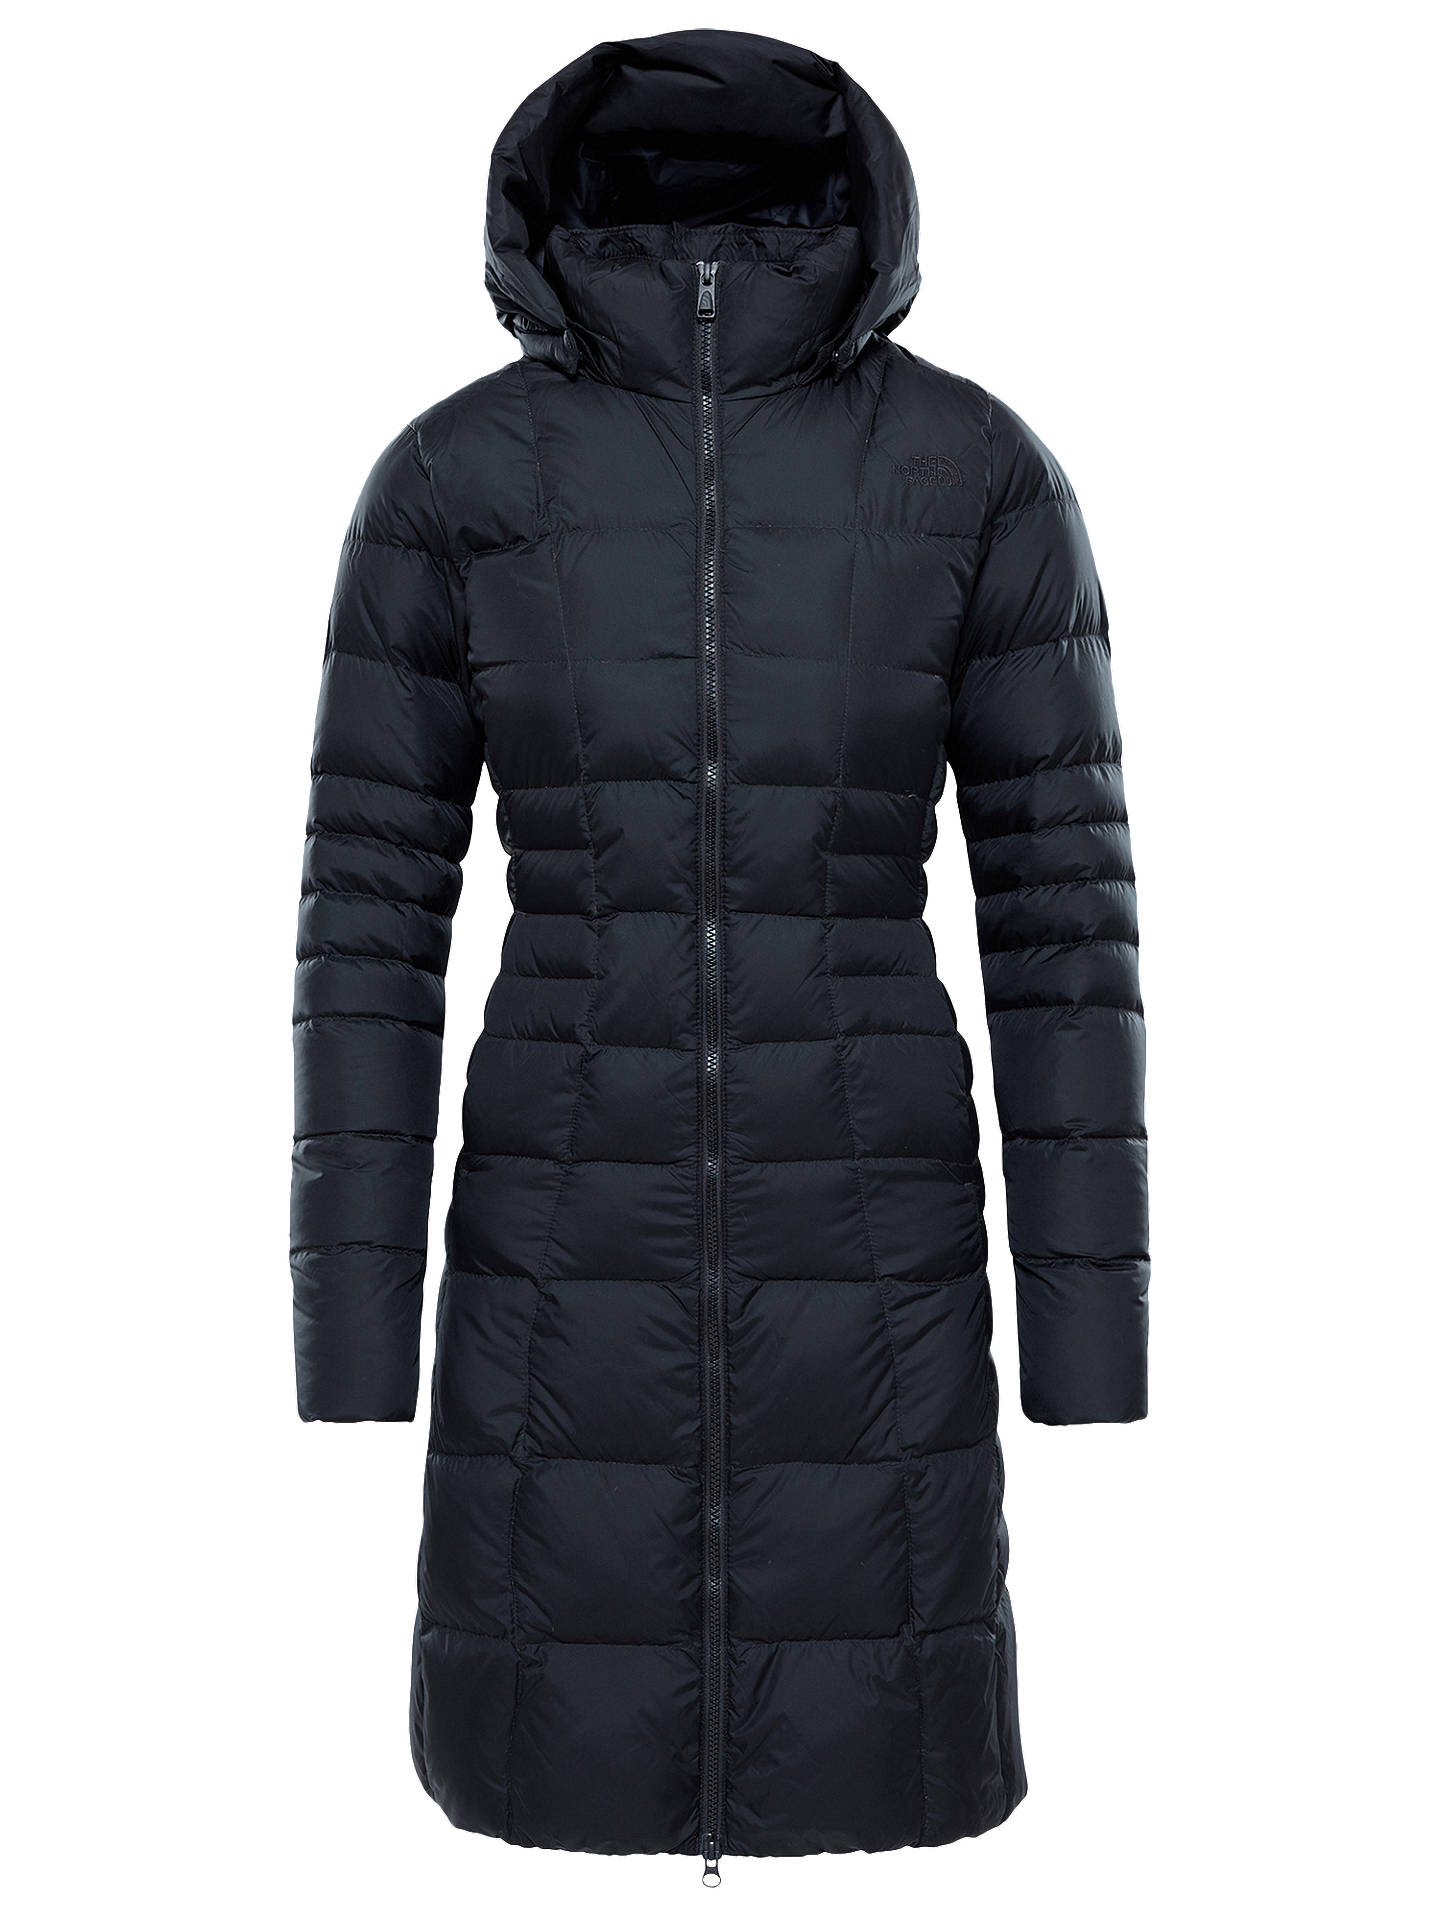 BuyThe North Face Metropolis II Women's Parka Jacket, Black, S Online at johnlewis.com